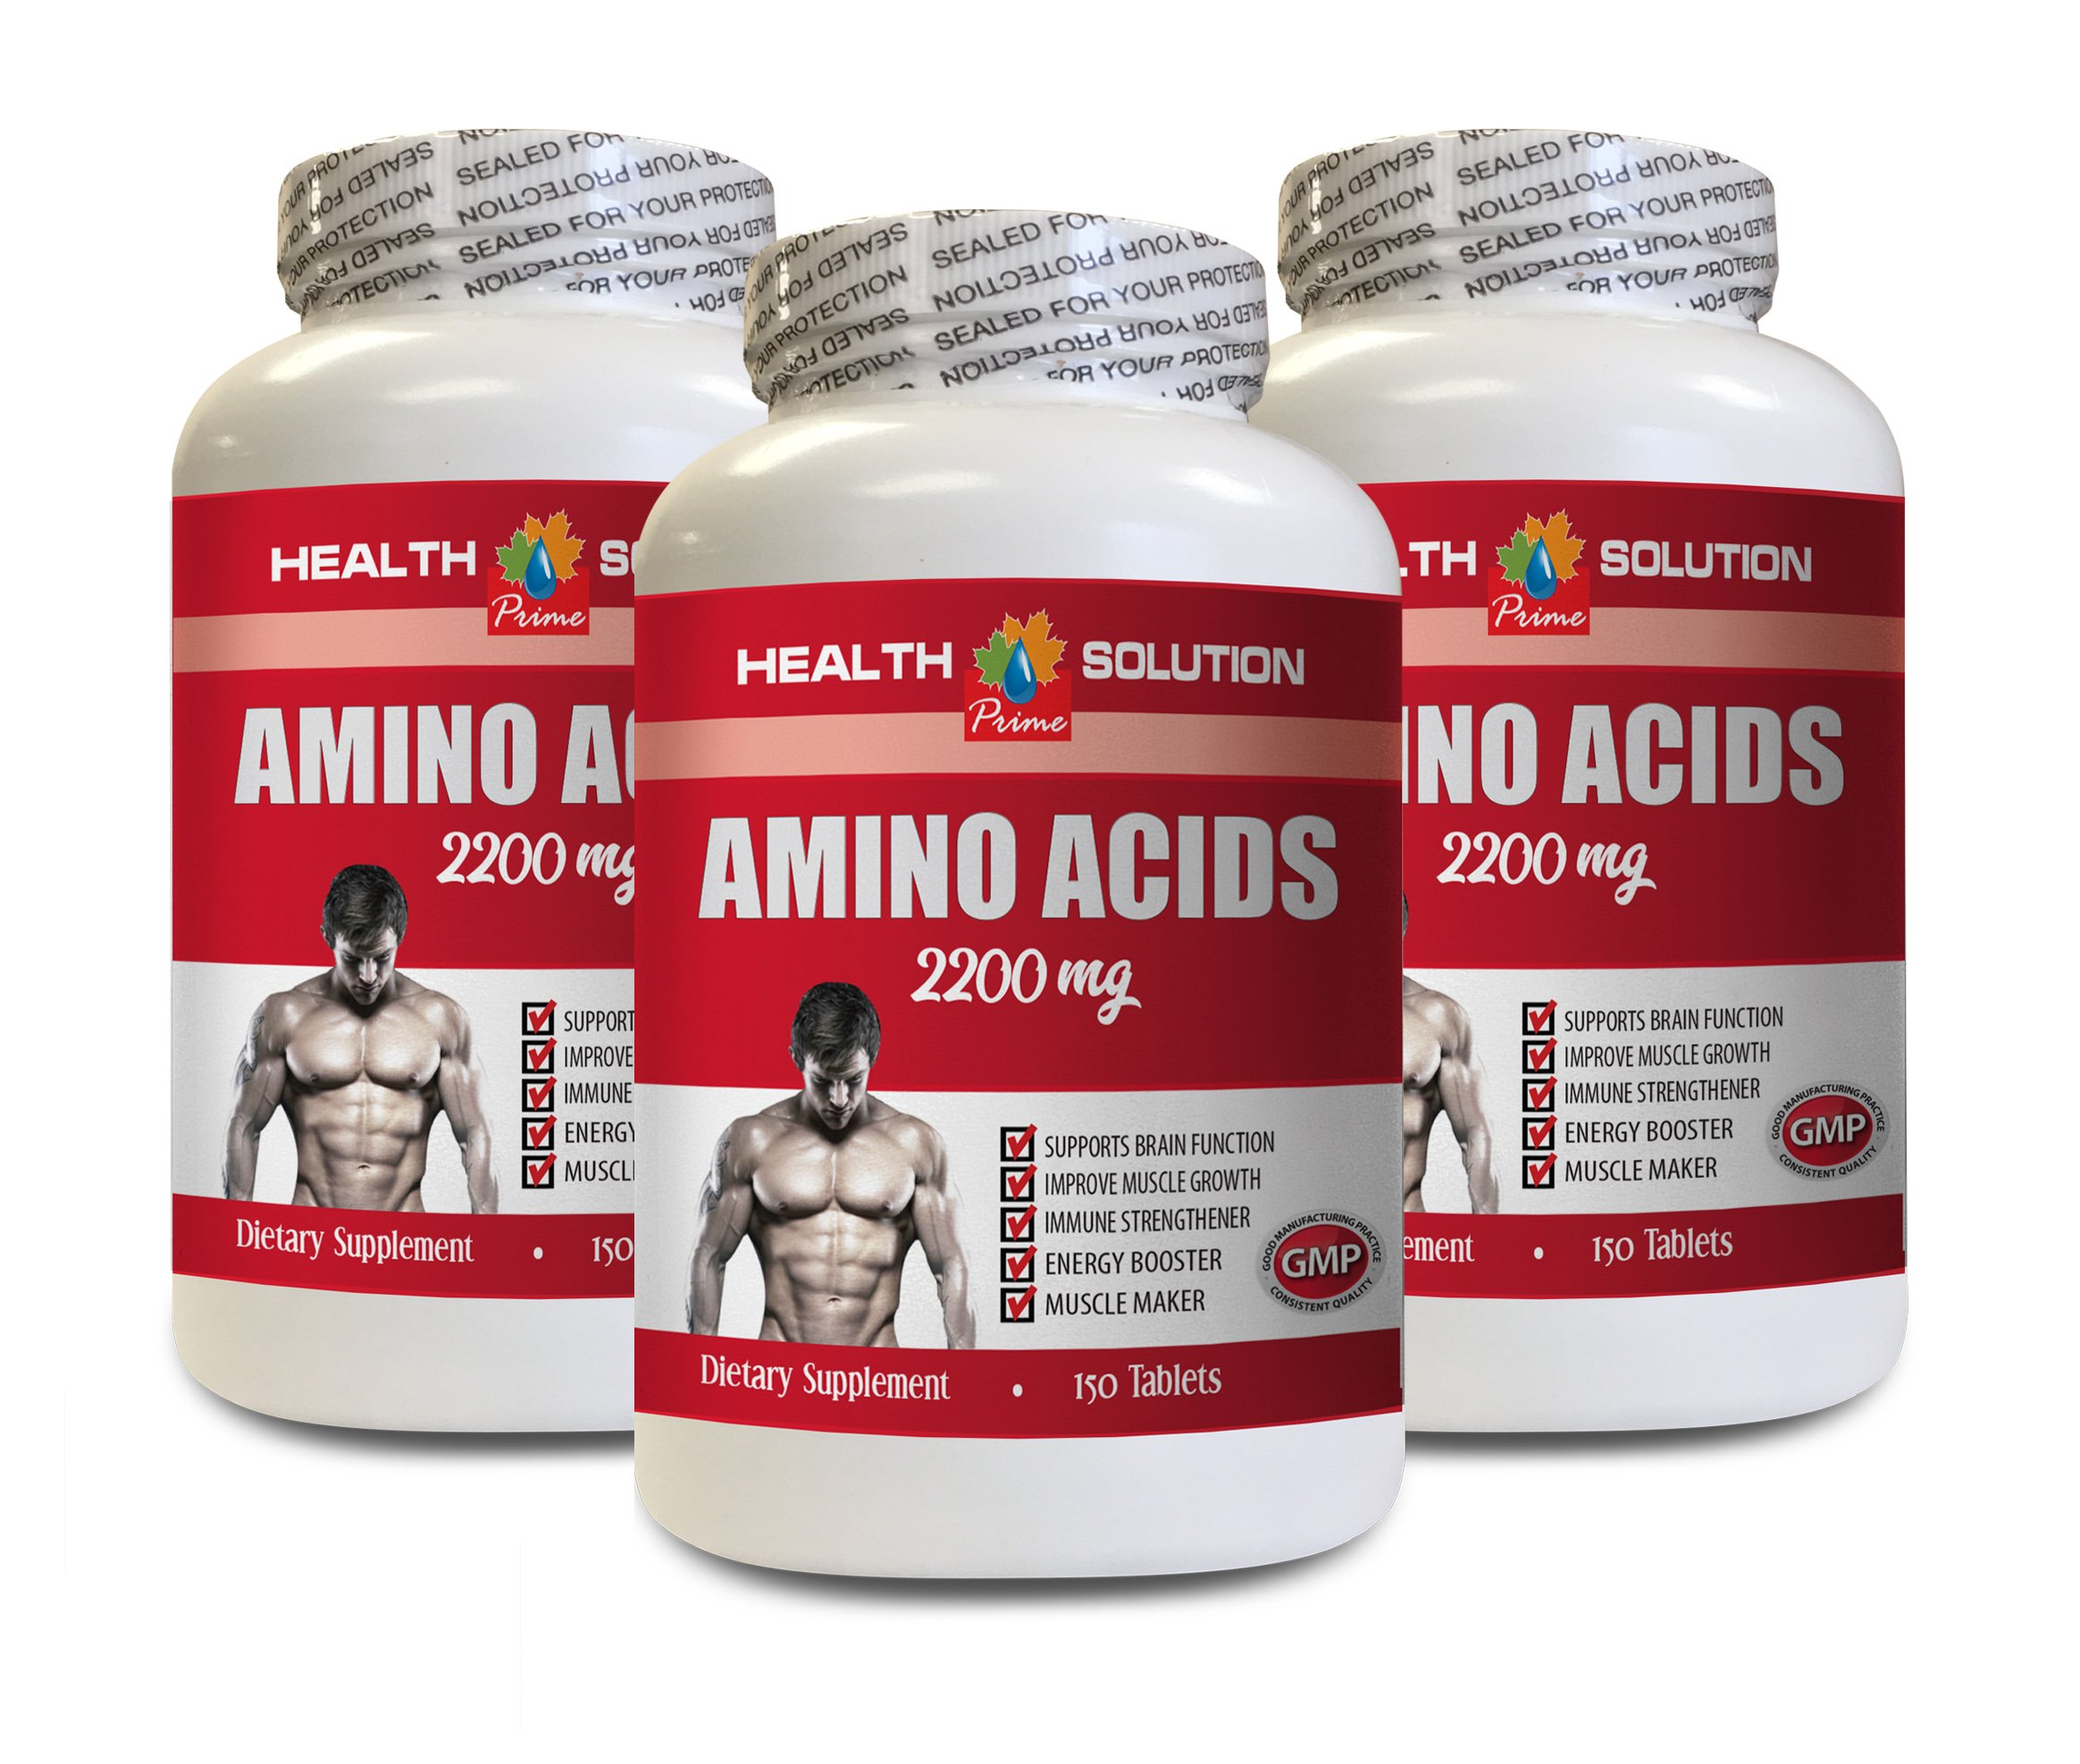 Muscle Building Formula - Amino Acids 2200 Mg - Muscle Maker - l-Lysine Supplement - 3 Bottles 450 Tablets